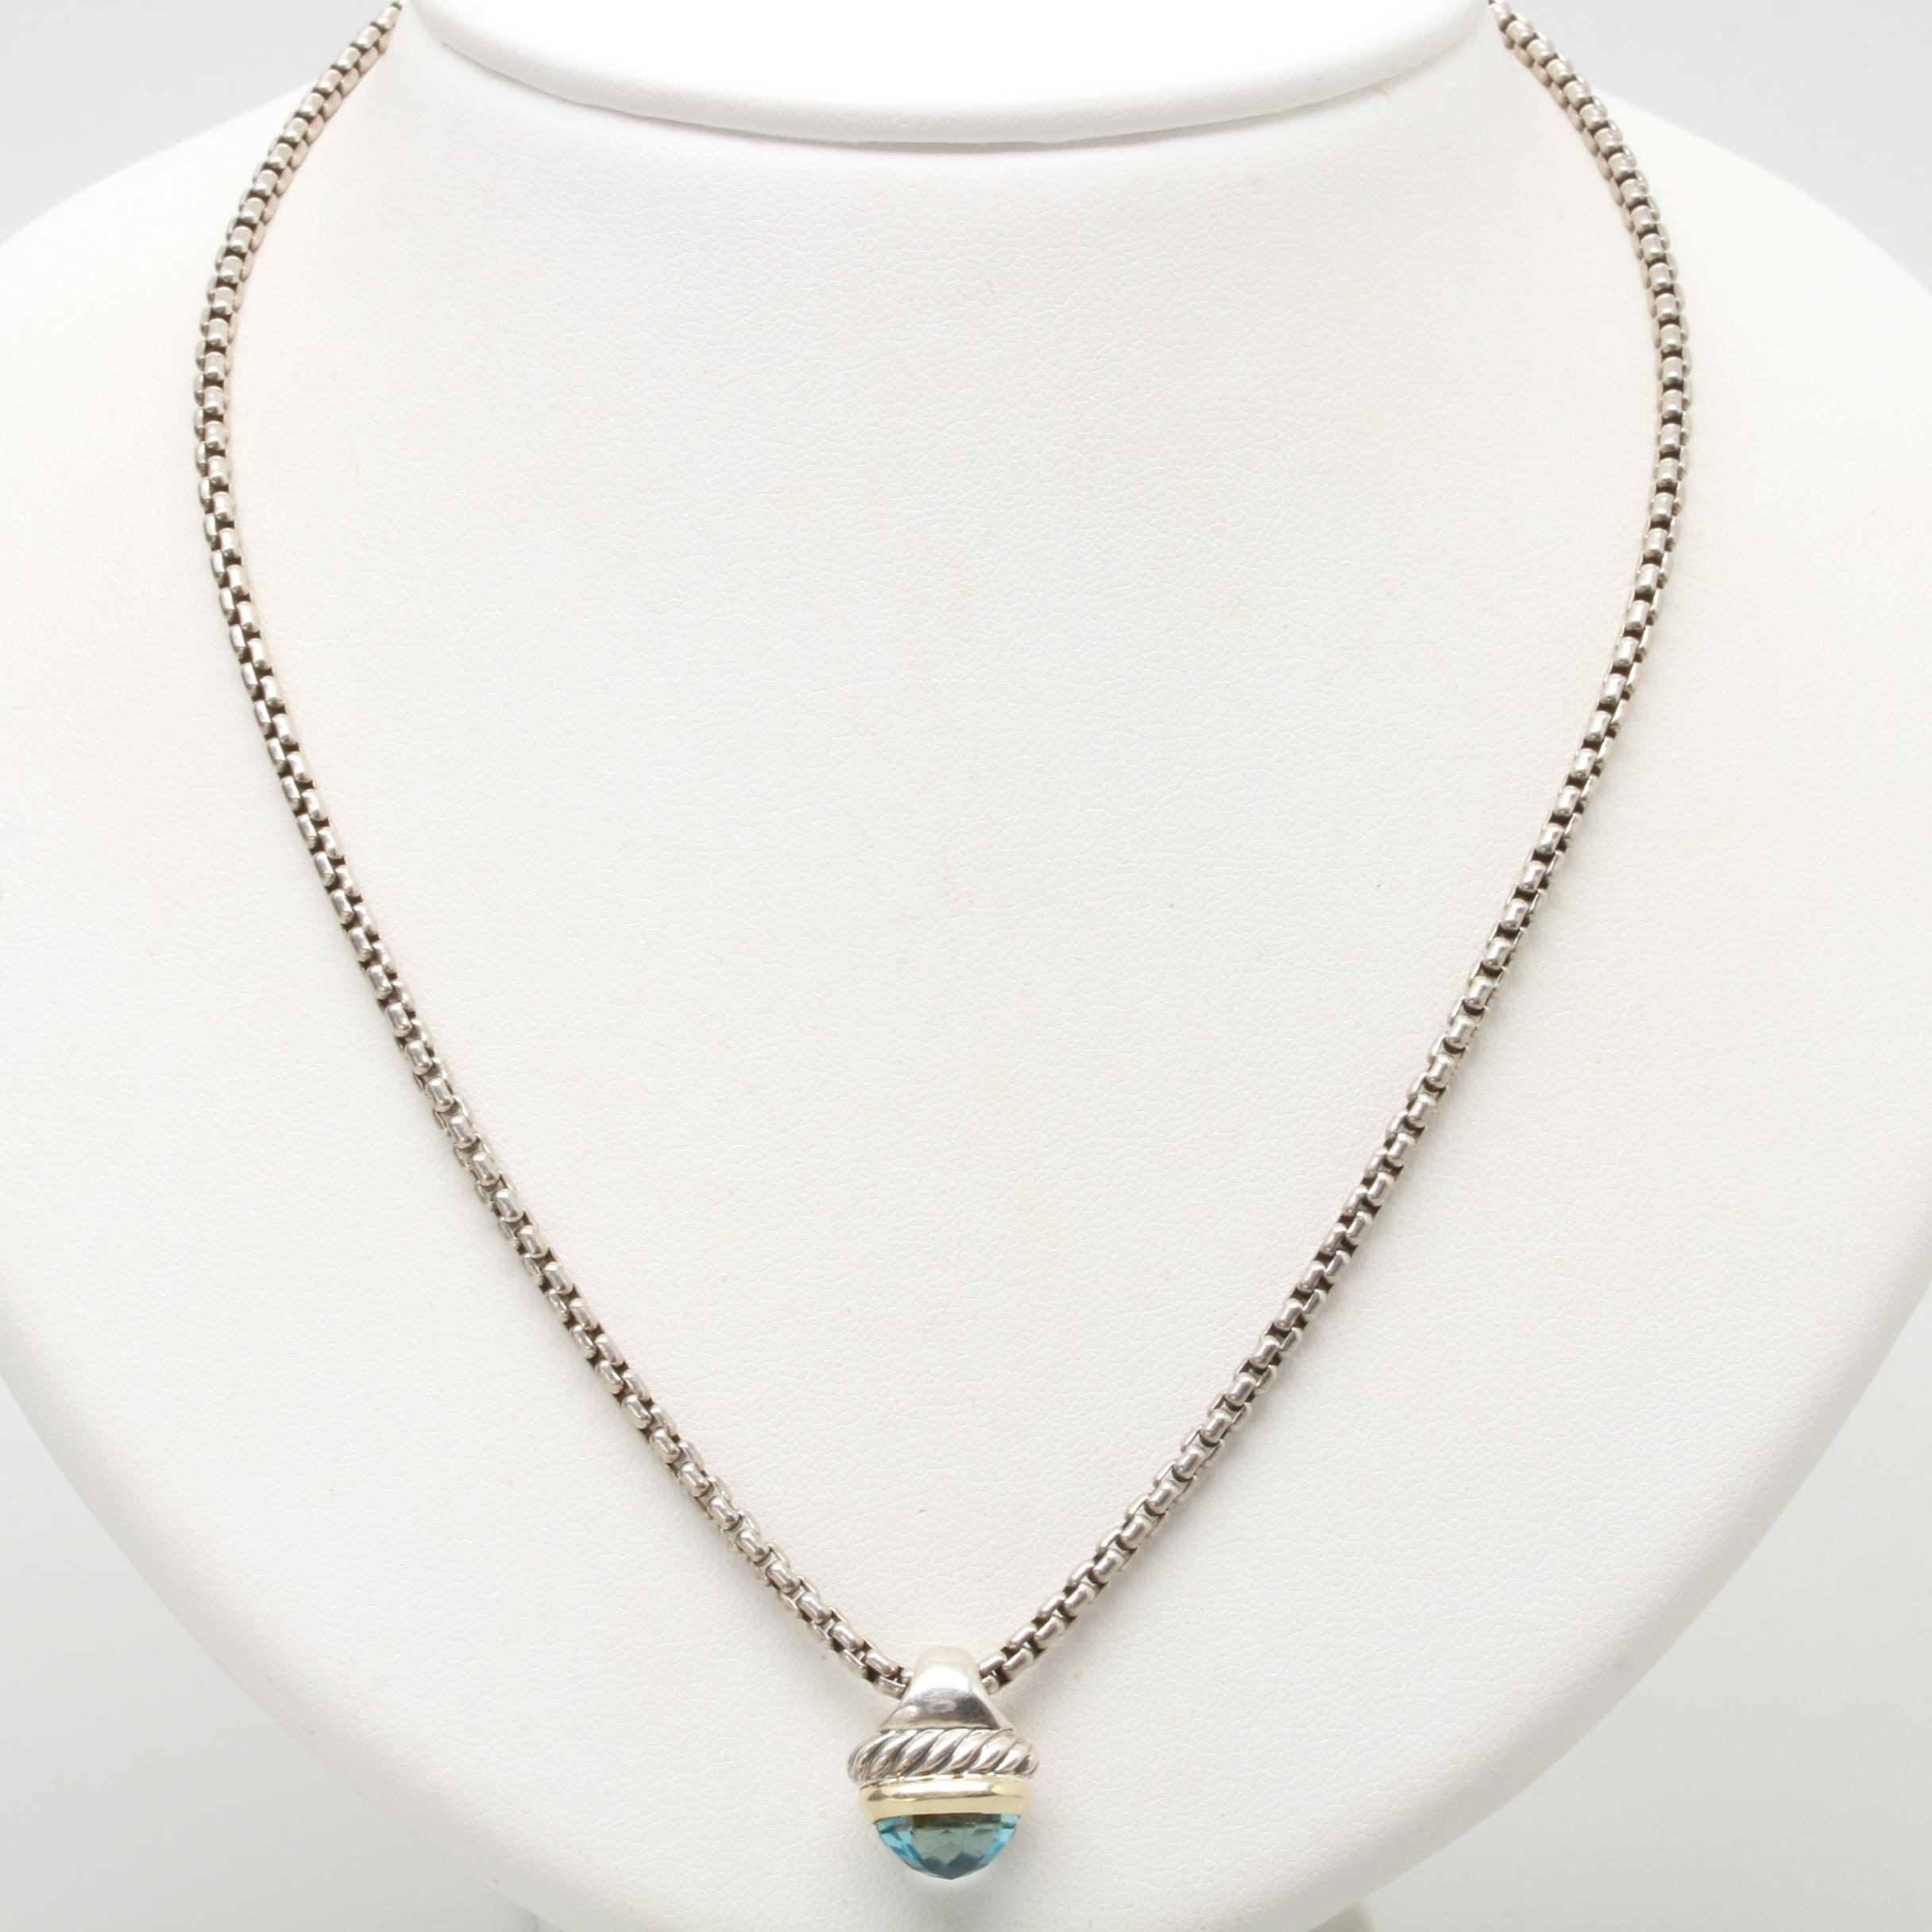 David Yurman Sterling Silver Blue Topaz Acorn Pendant Necklace with 14K Accents